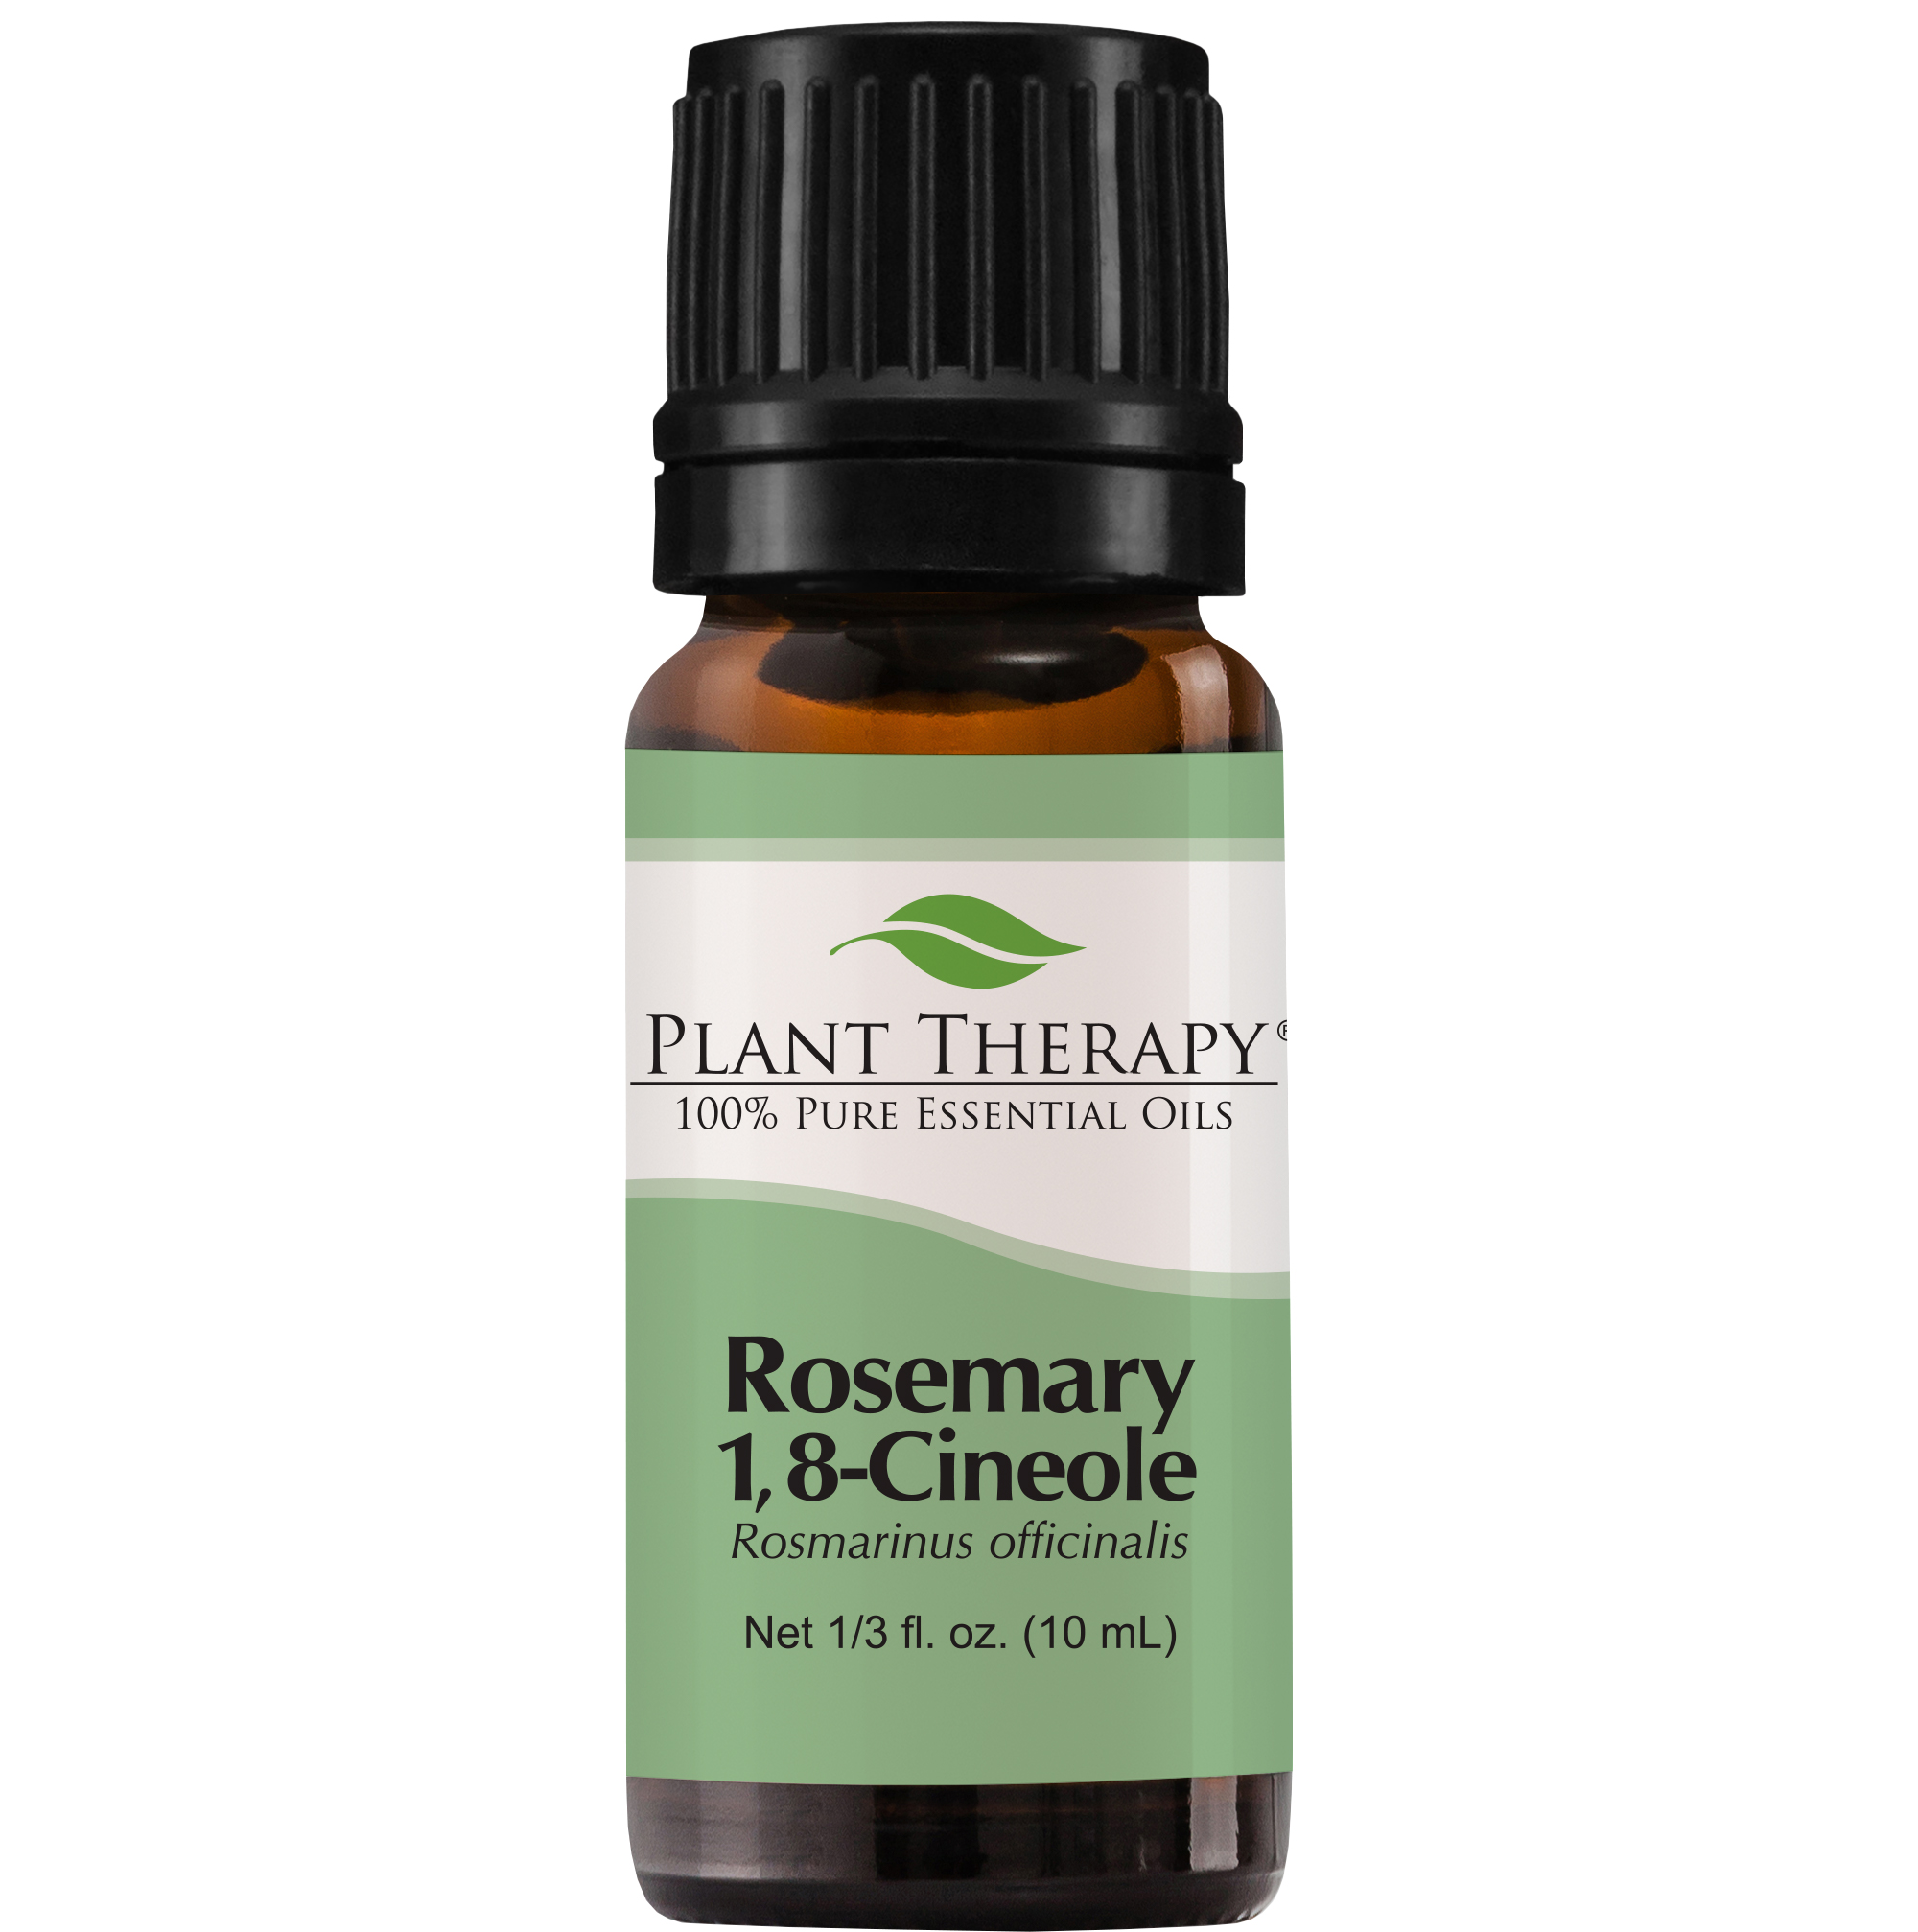 Plant Therapy Rosemary Essential Oil | 100% Pure, Undiluted, Natural Aromatherapy, Therapeutic Grade | 10 mL (1/3 oz)